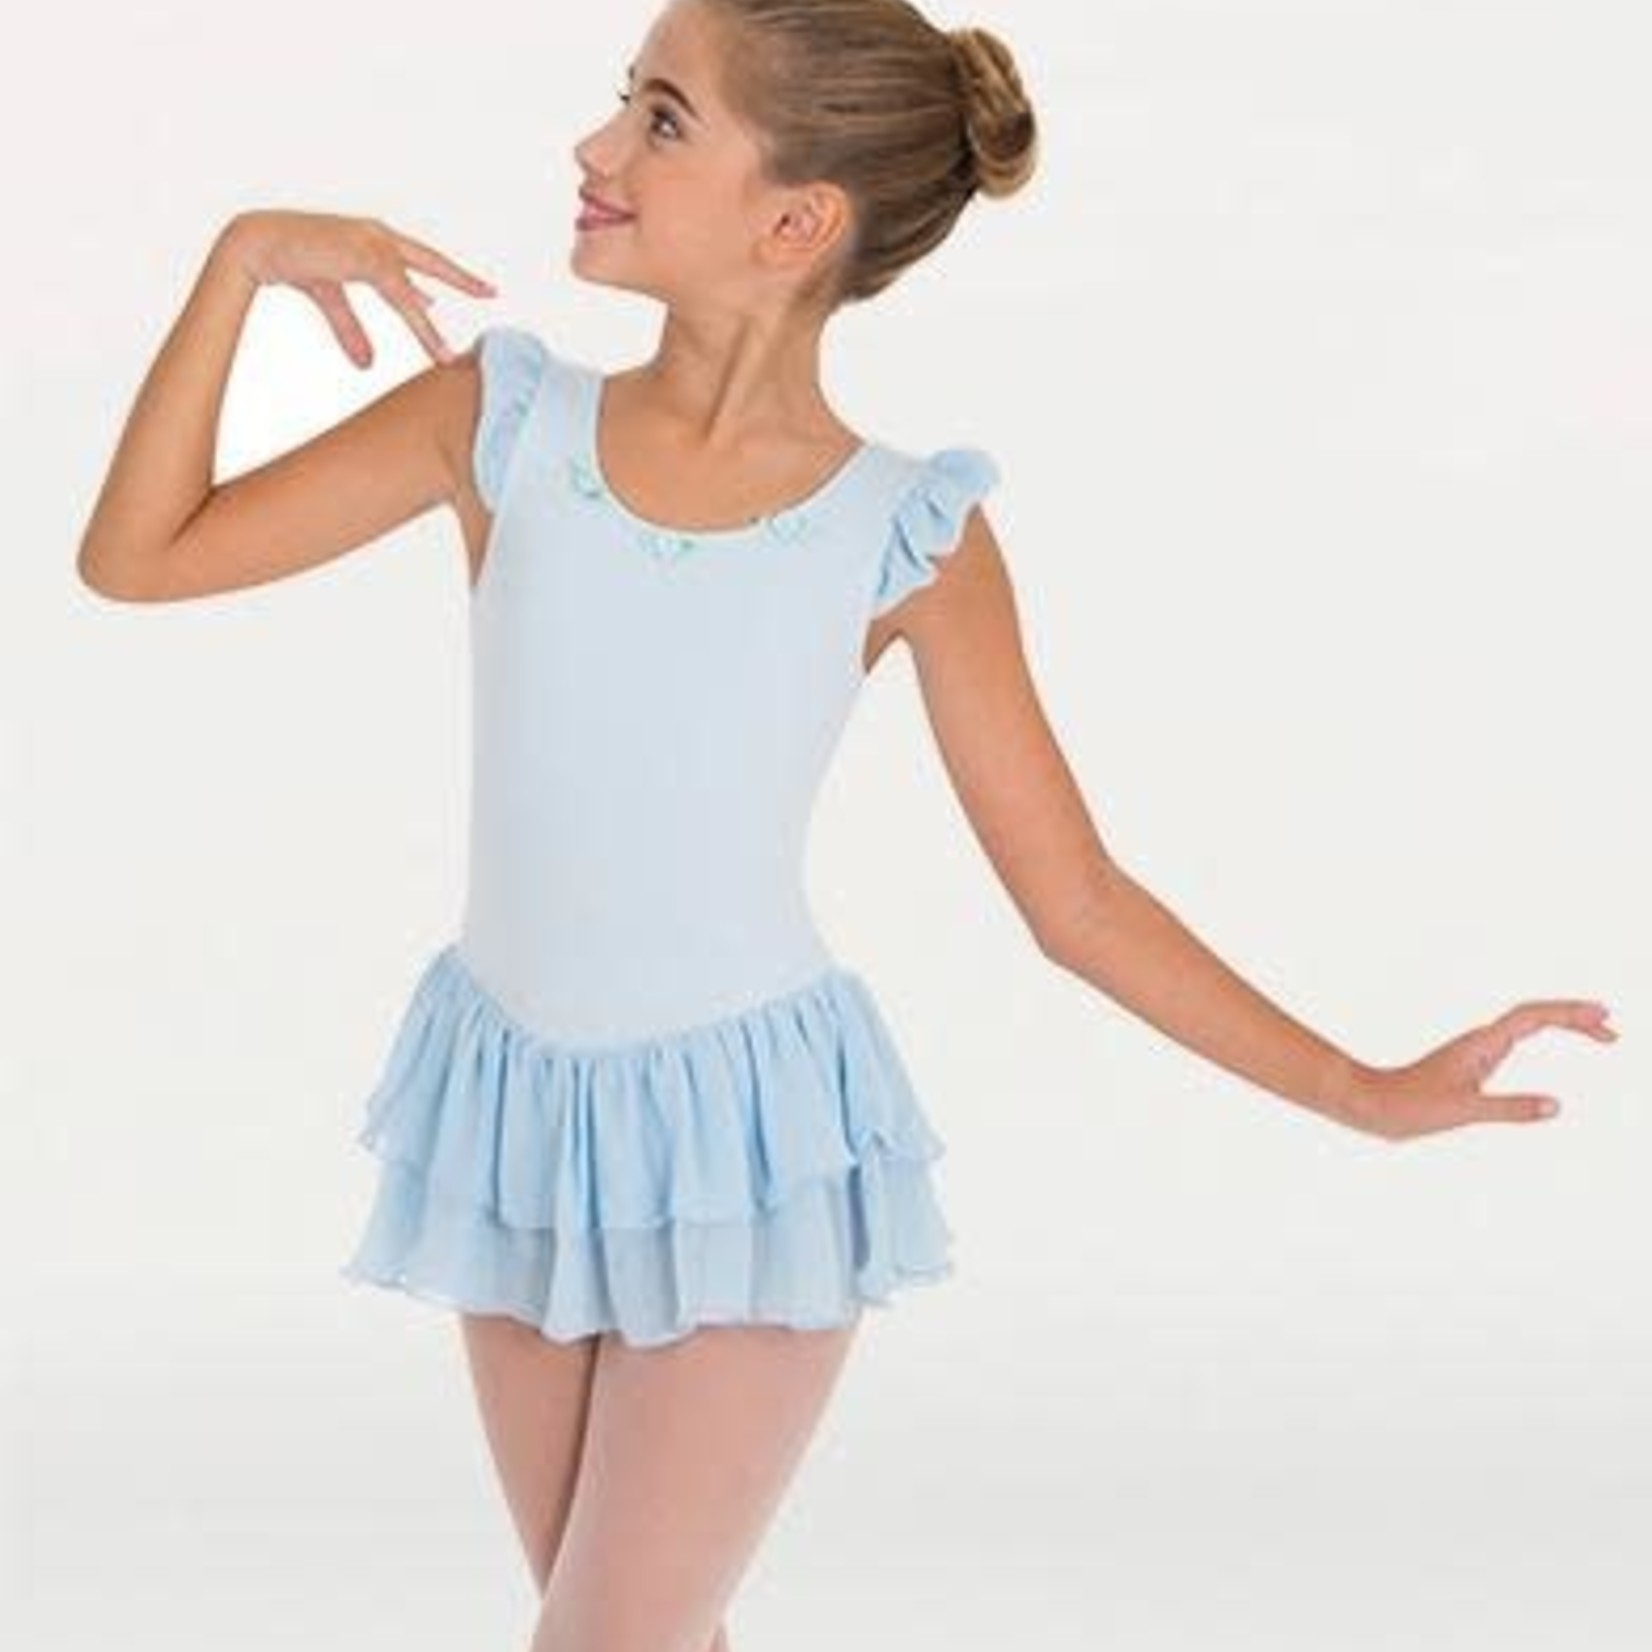 Body Wrappers Body Wrappers 2237 Flutter Sleeve Skirted Leotard